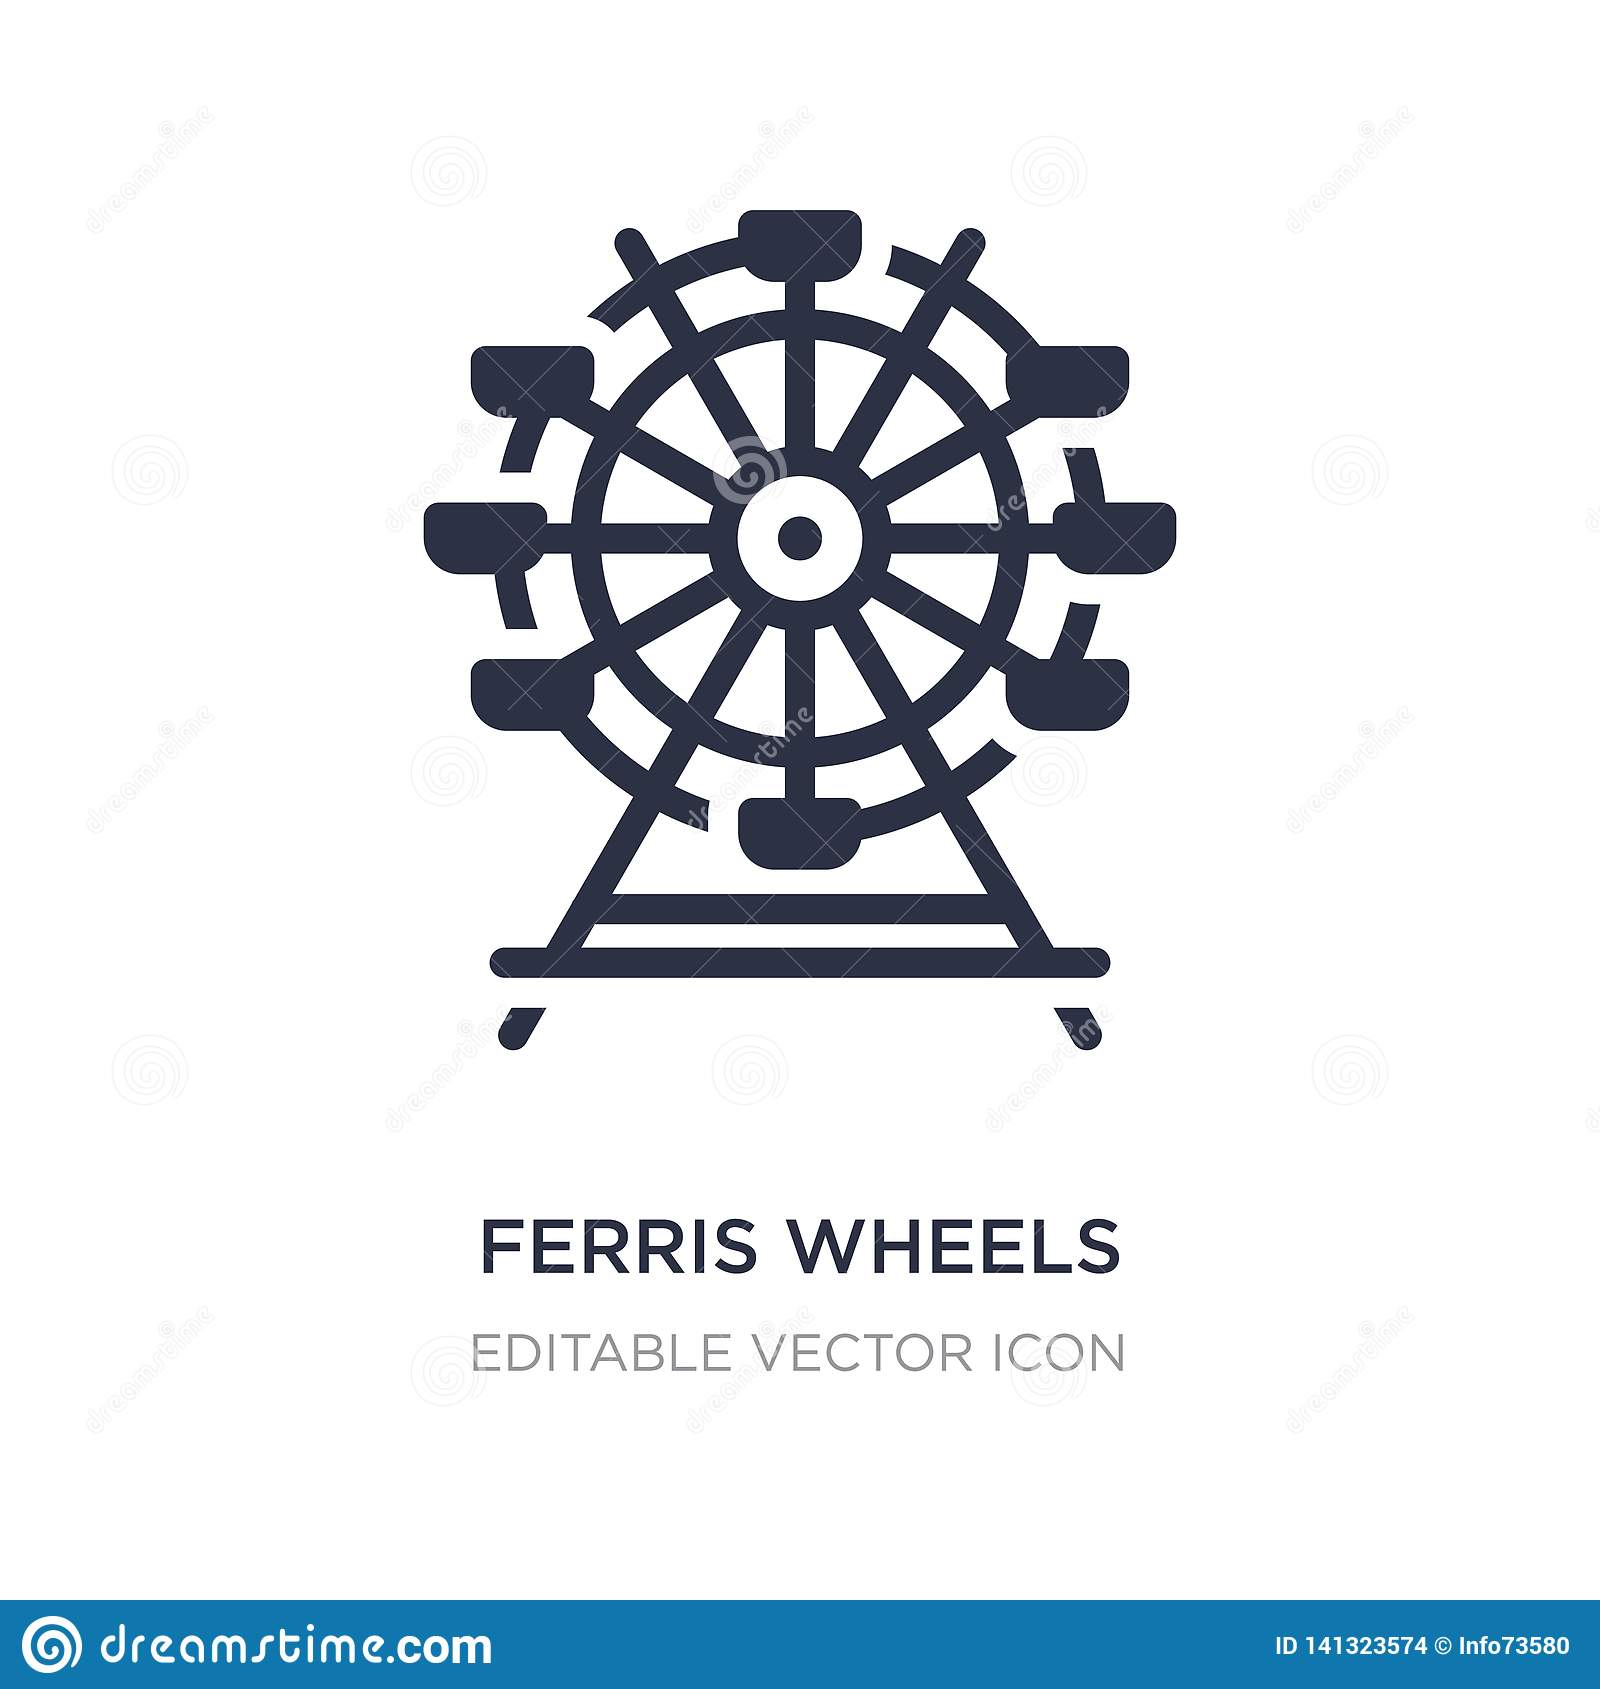 ferris wheels icon on white background. Simple element illustration from Business concept